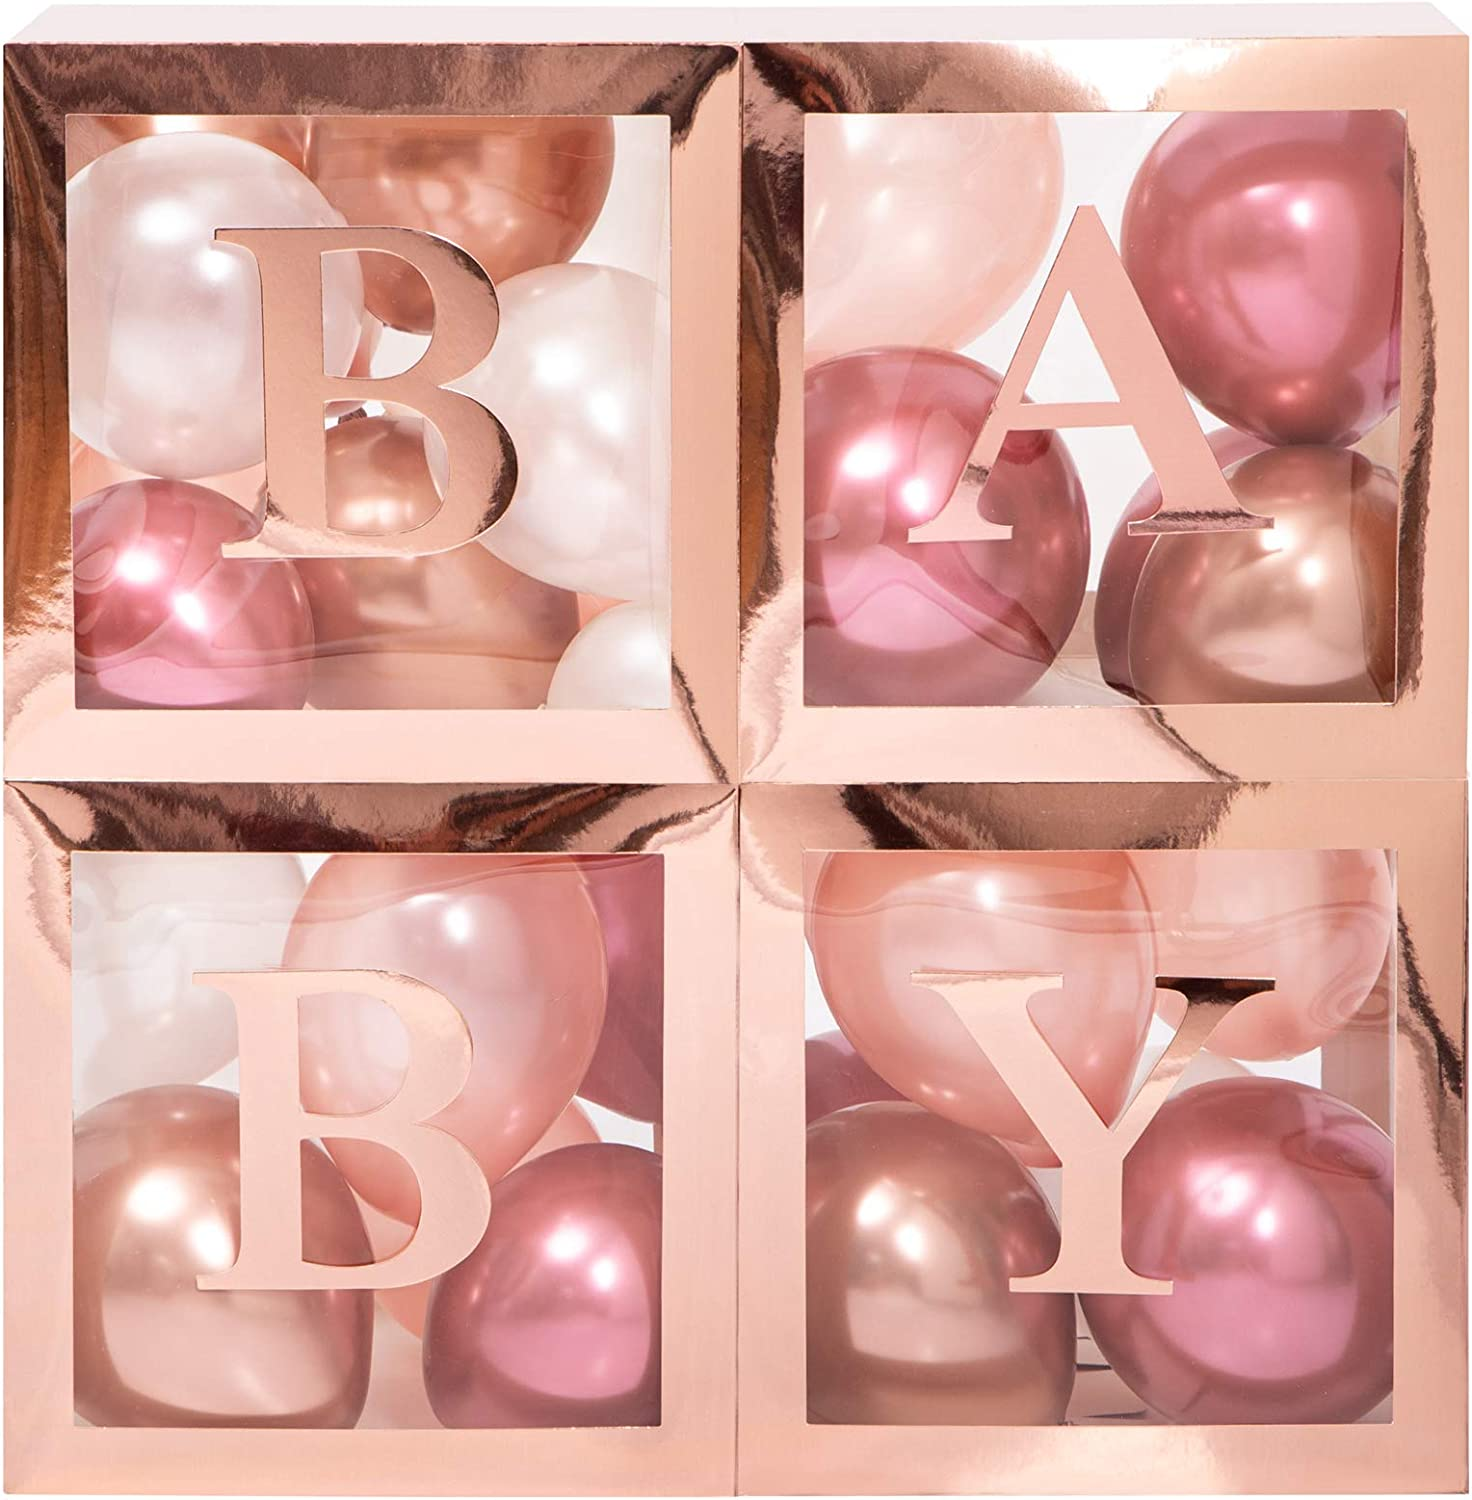 Baby Shower Boxes Party Decorations - 45 pcs, 33 Rose Gold Balloons, 4 Clear & Transparent Blocks, 8 Letters, First Birthday Centerpiece Decor & Supplies for Boys and Girls, Gender Reveal Backdrop